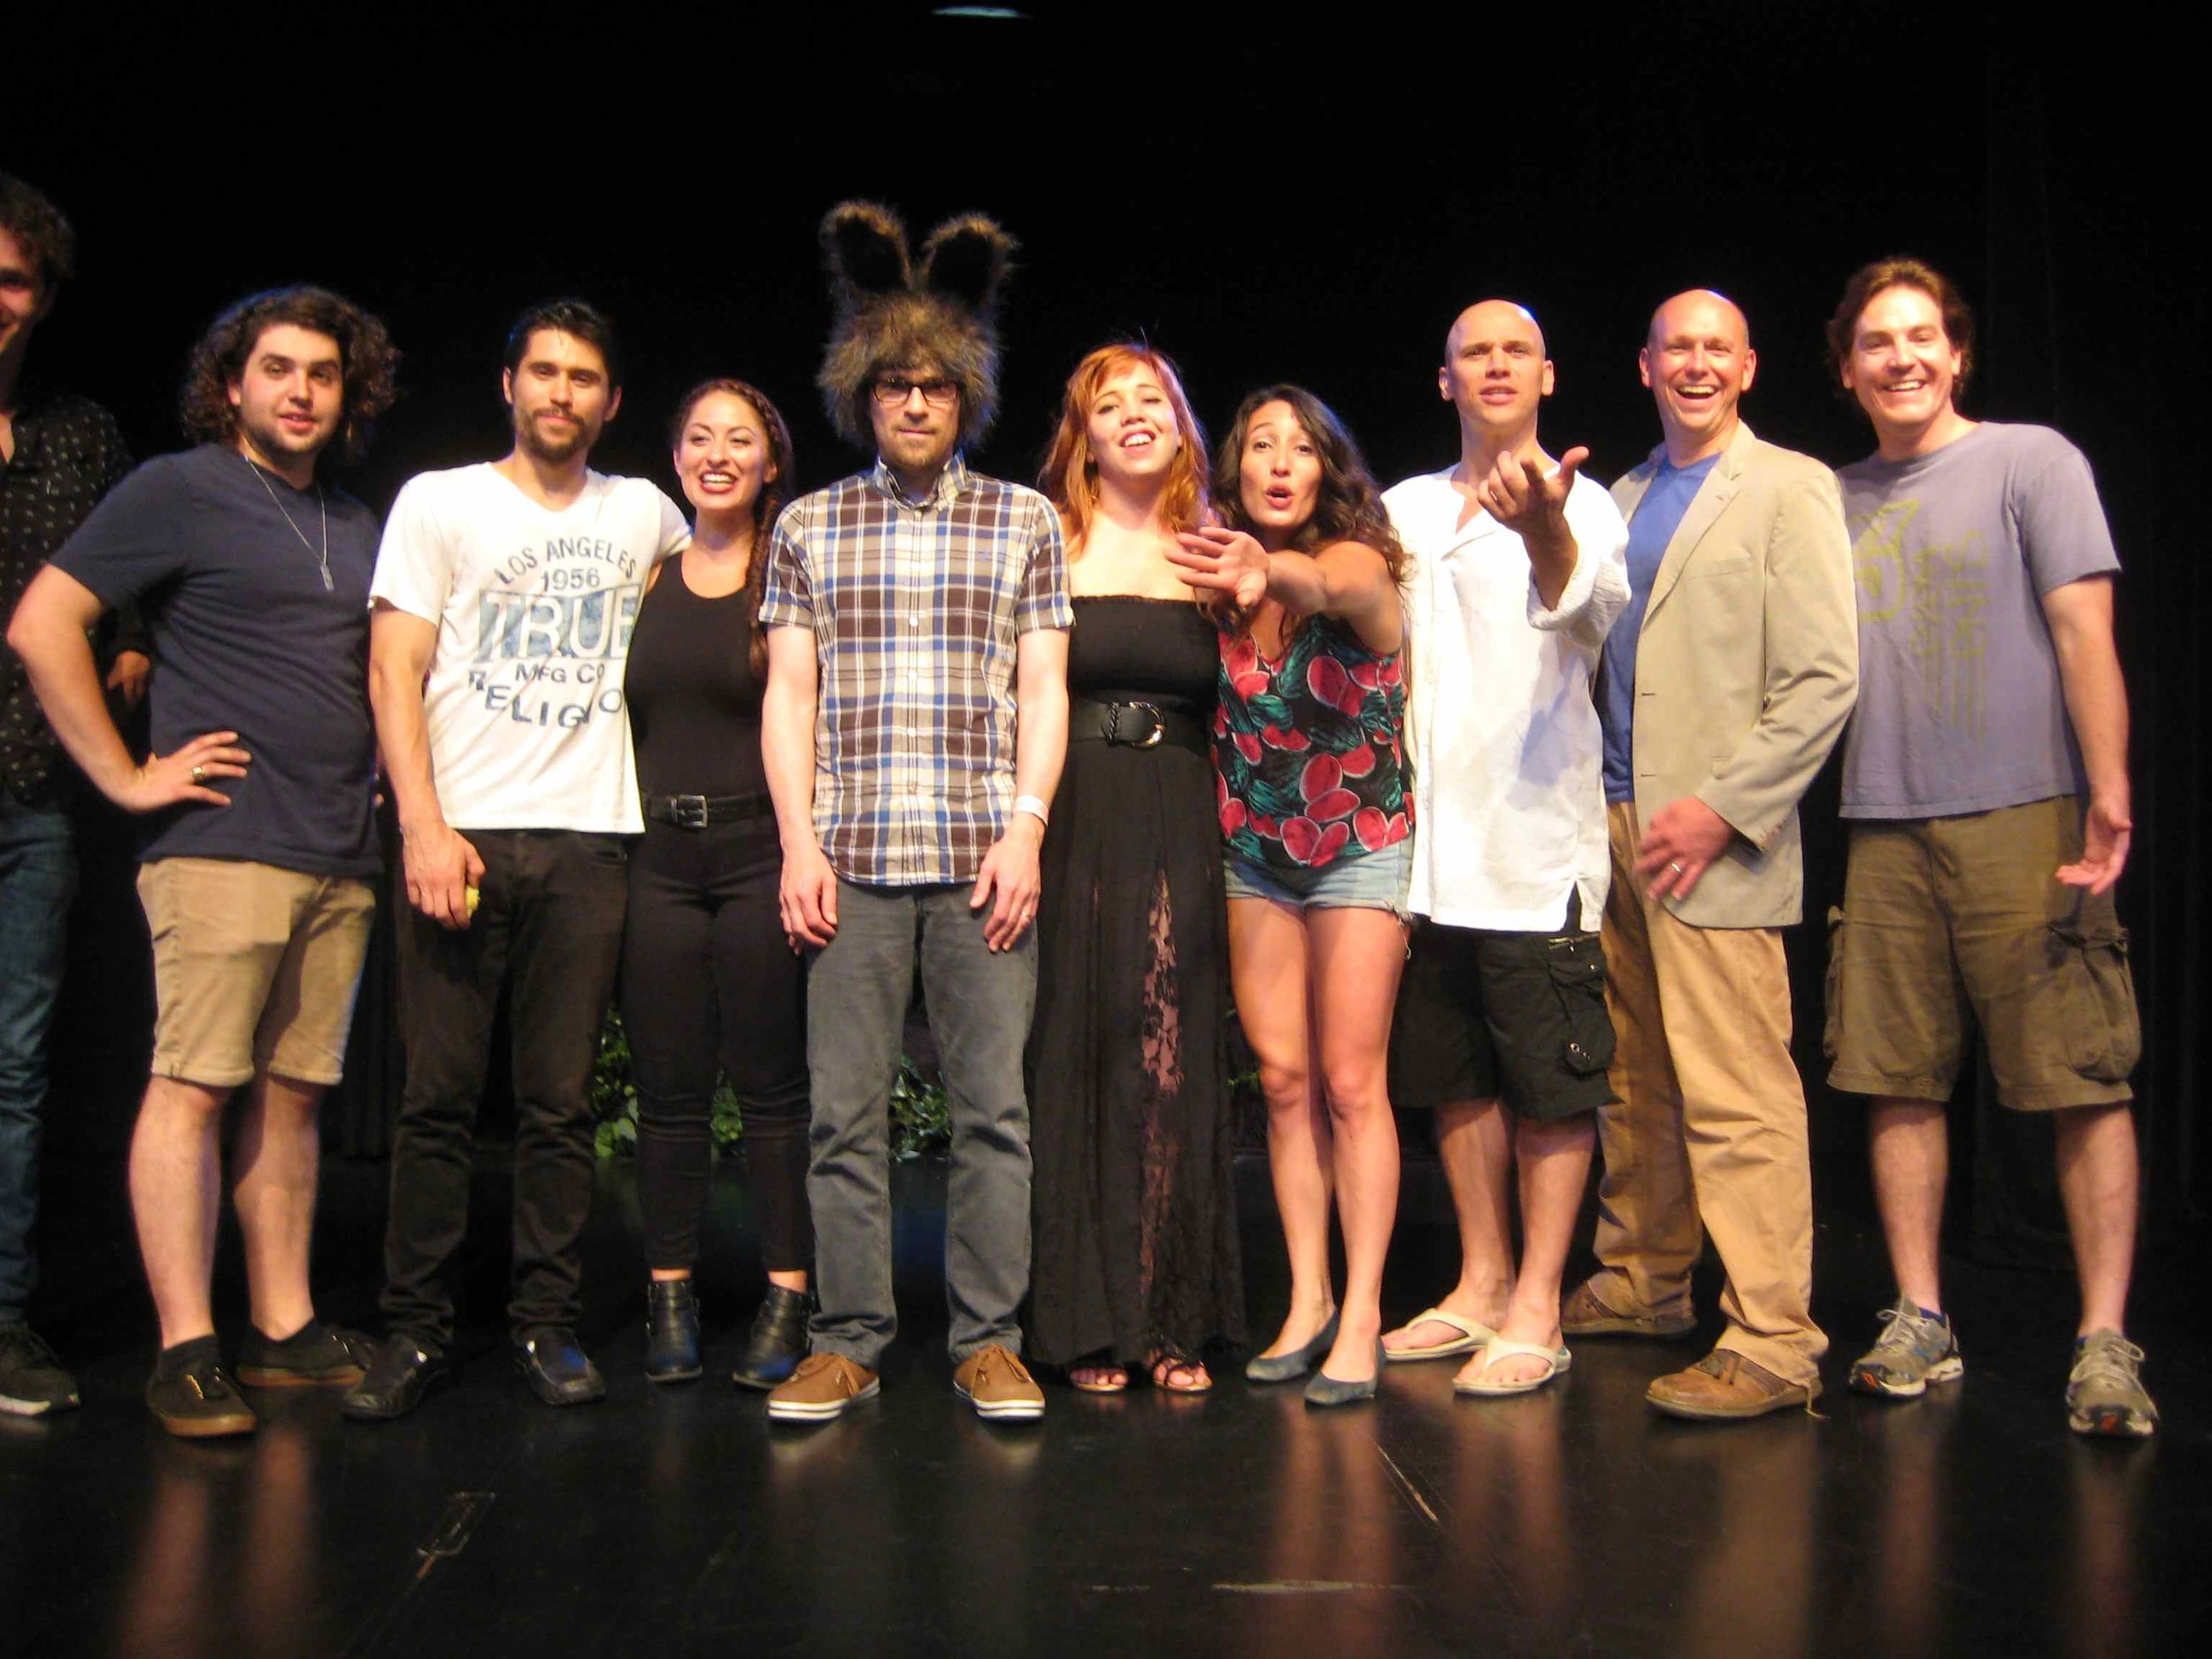 THE CAST OF MIDSUMMER NIGHT'S DREAM WITH RIVERS CUOMO